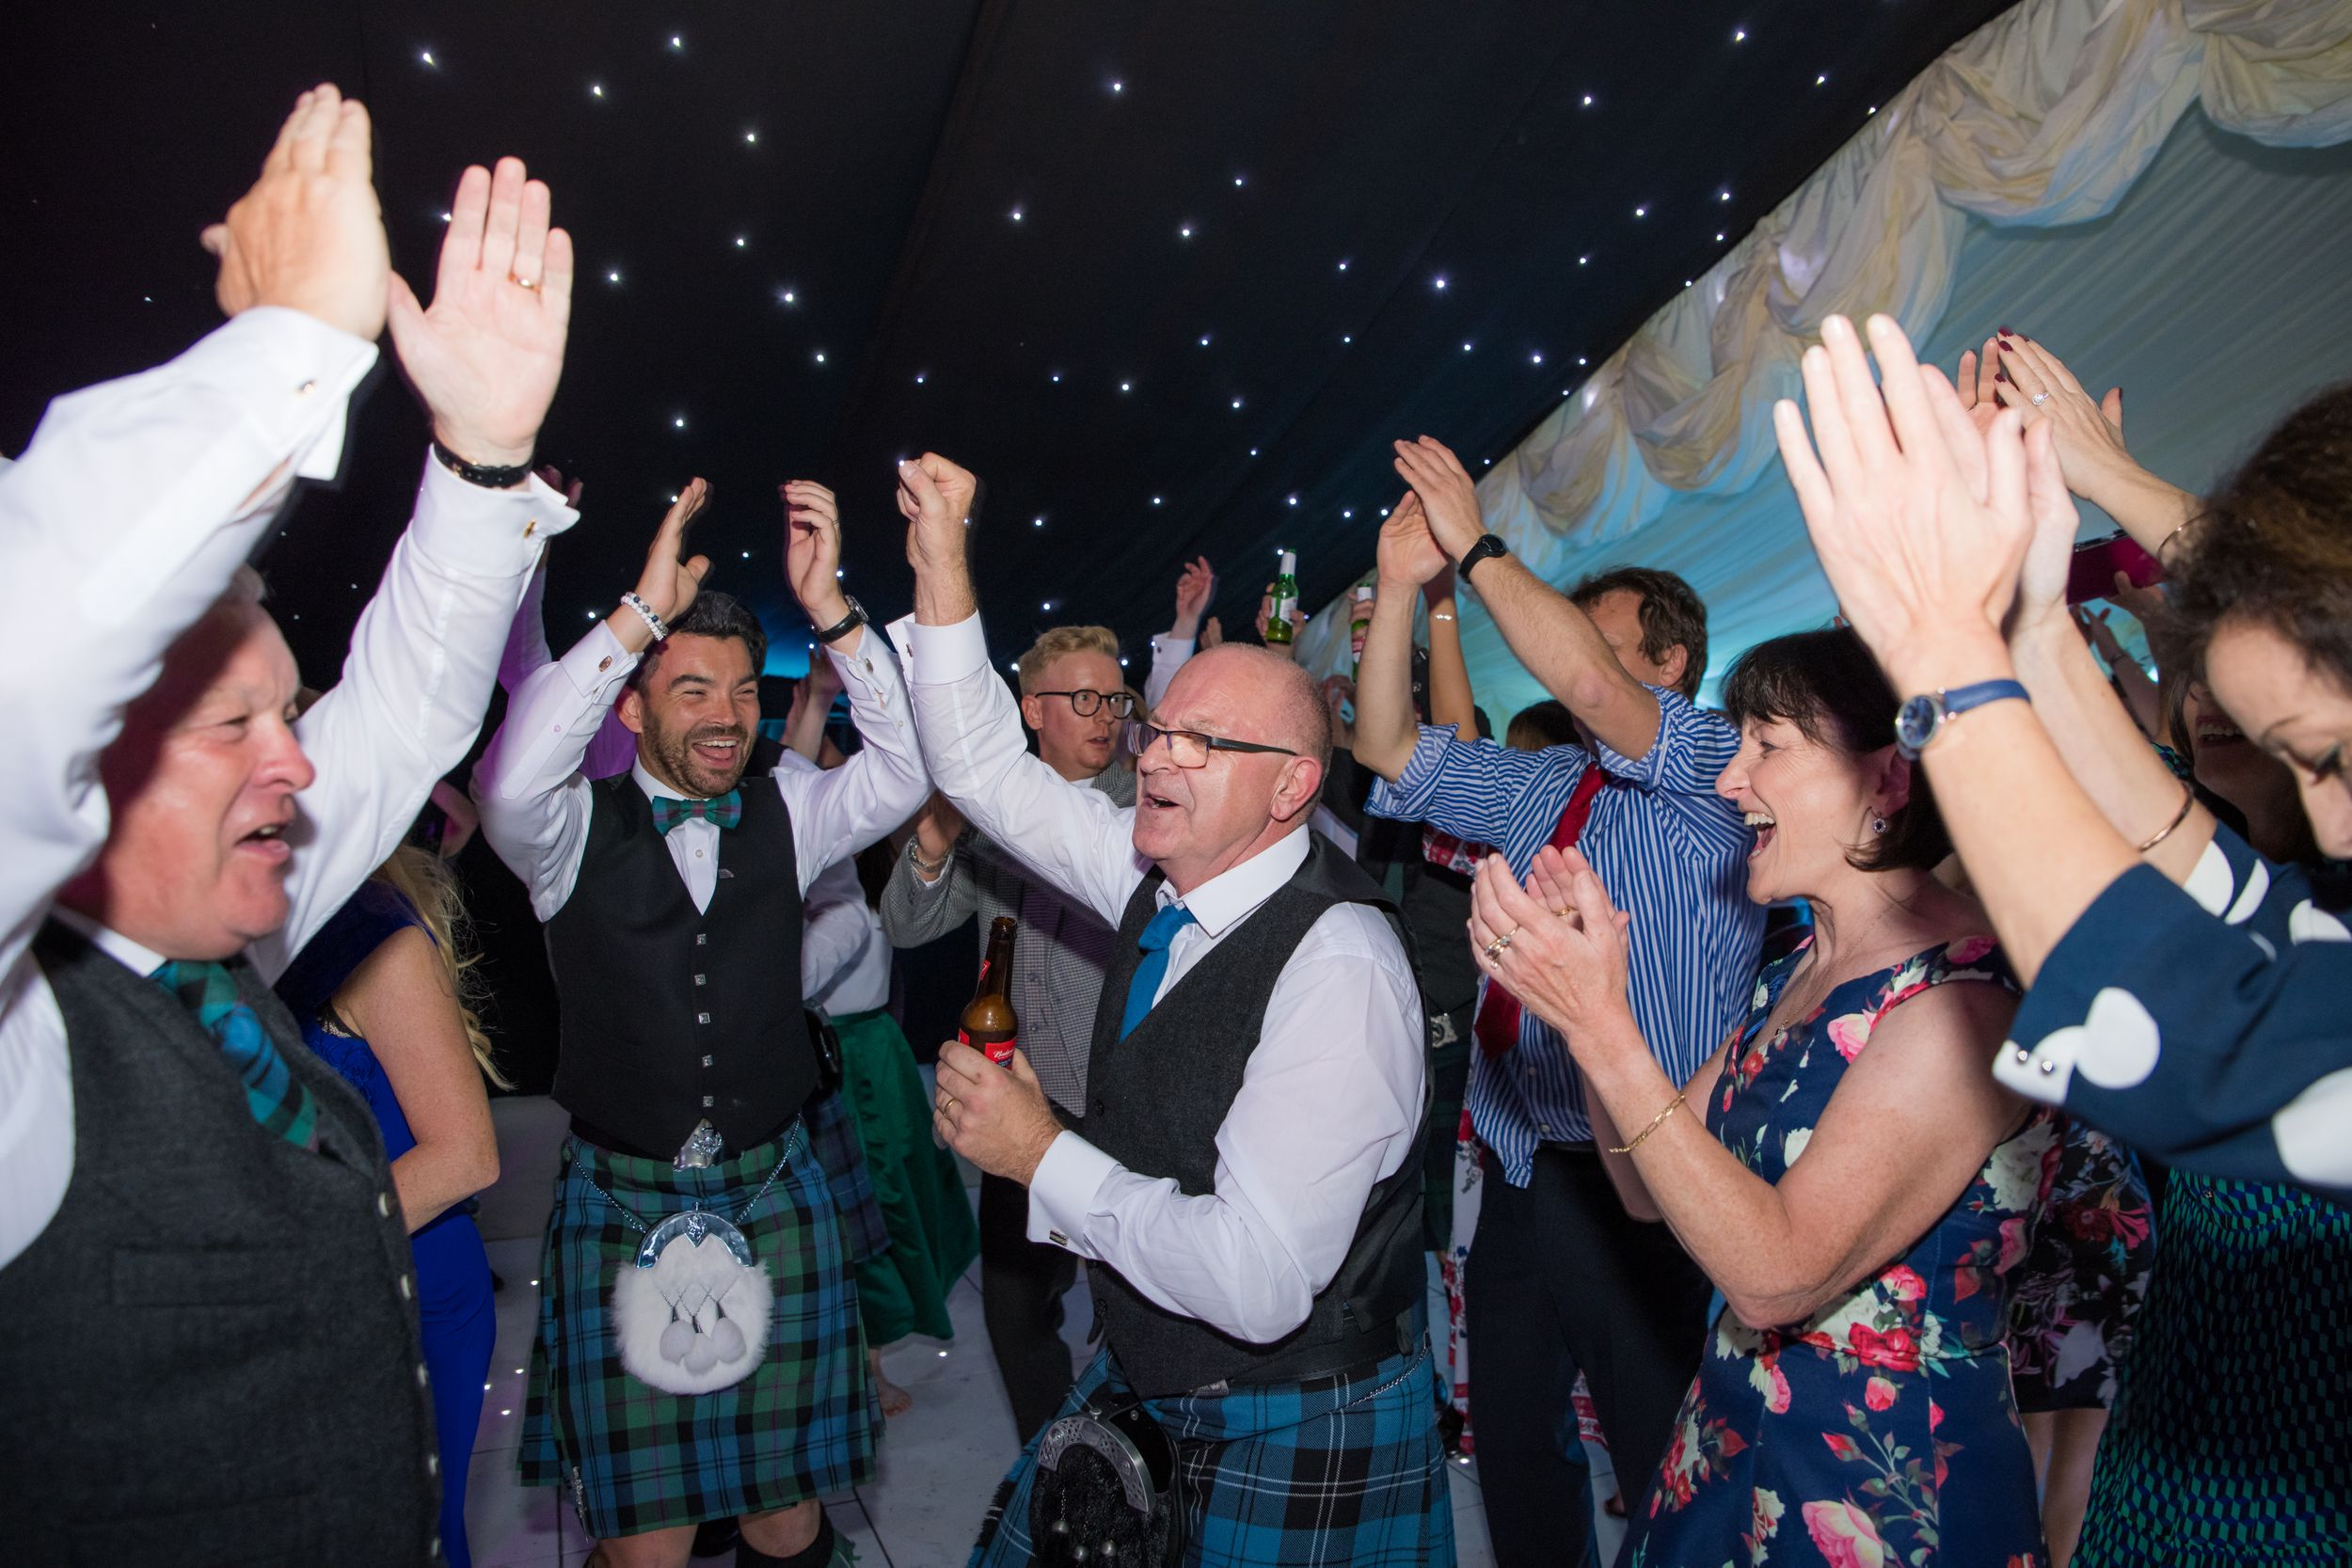 wedding guests in kilts partying, Robert Nelson Wedding Photography